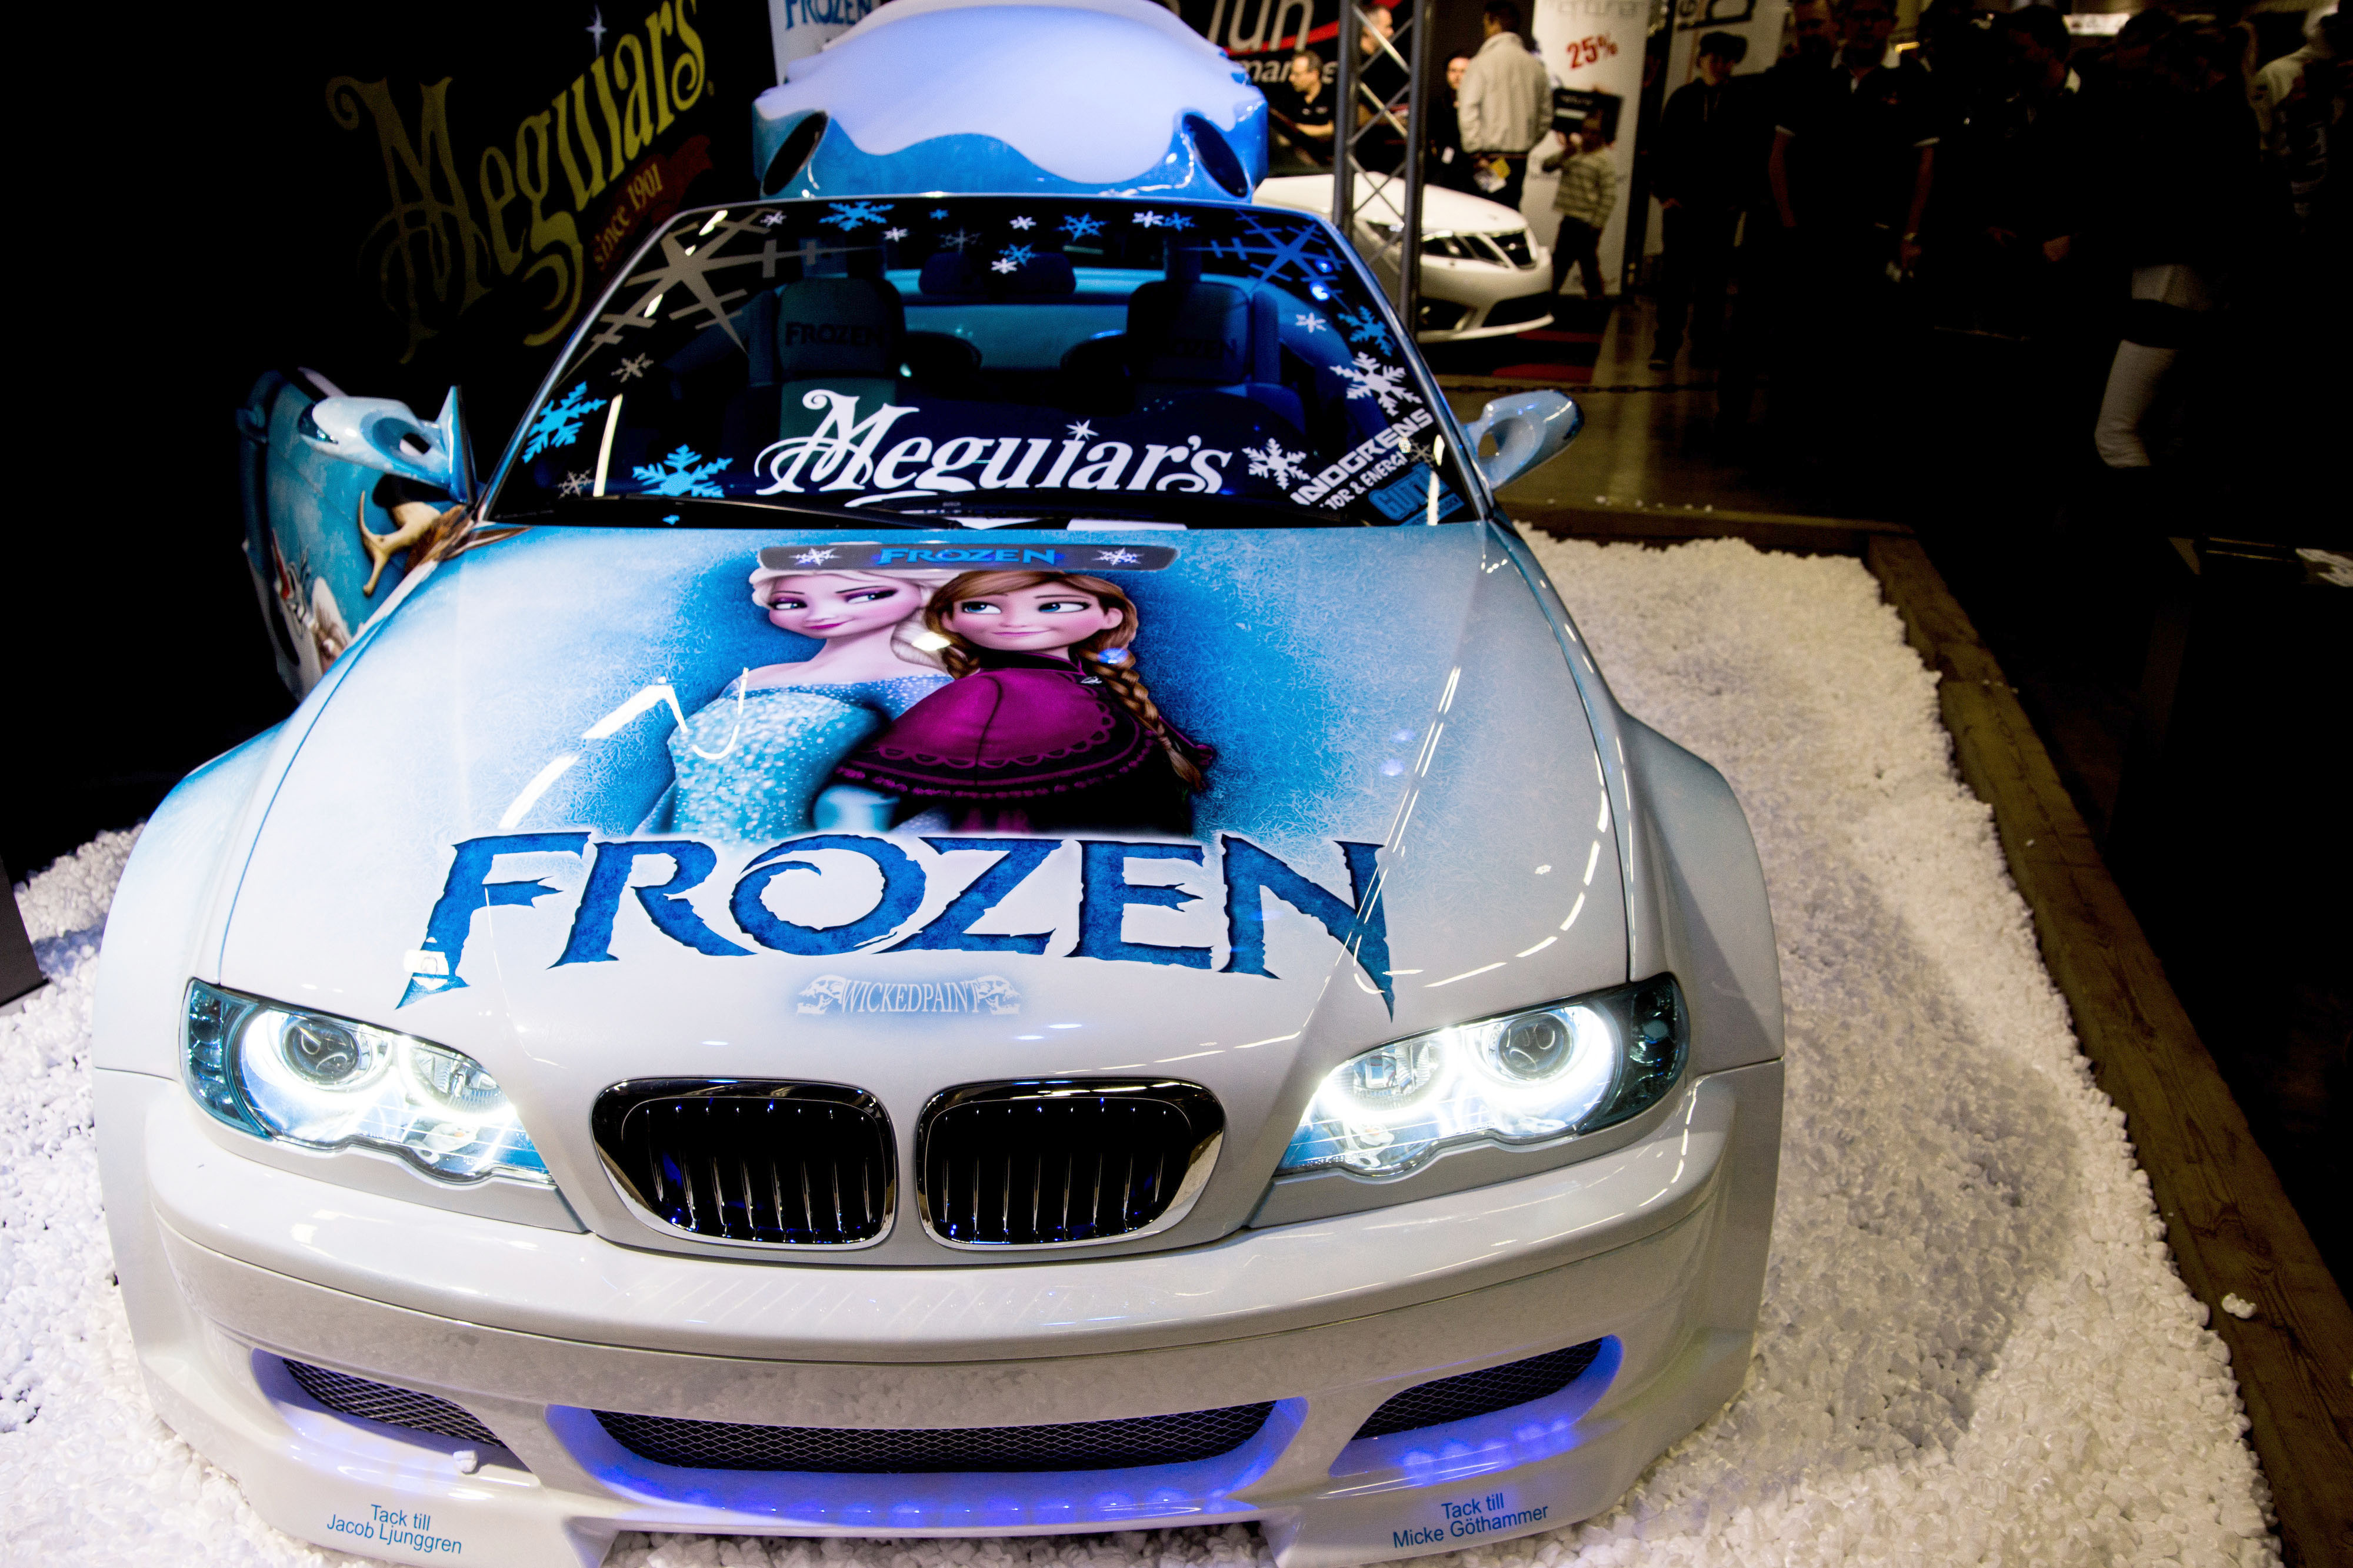 Dynamic Duo Add A Touch Of Frost To Create Frozen Themed Car